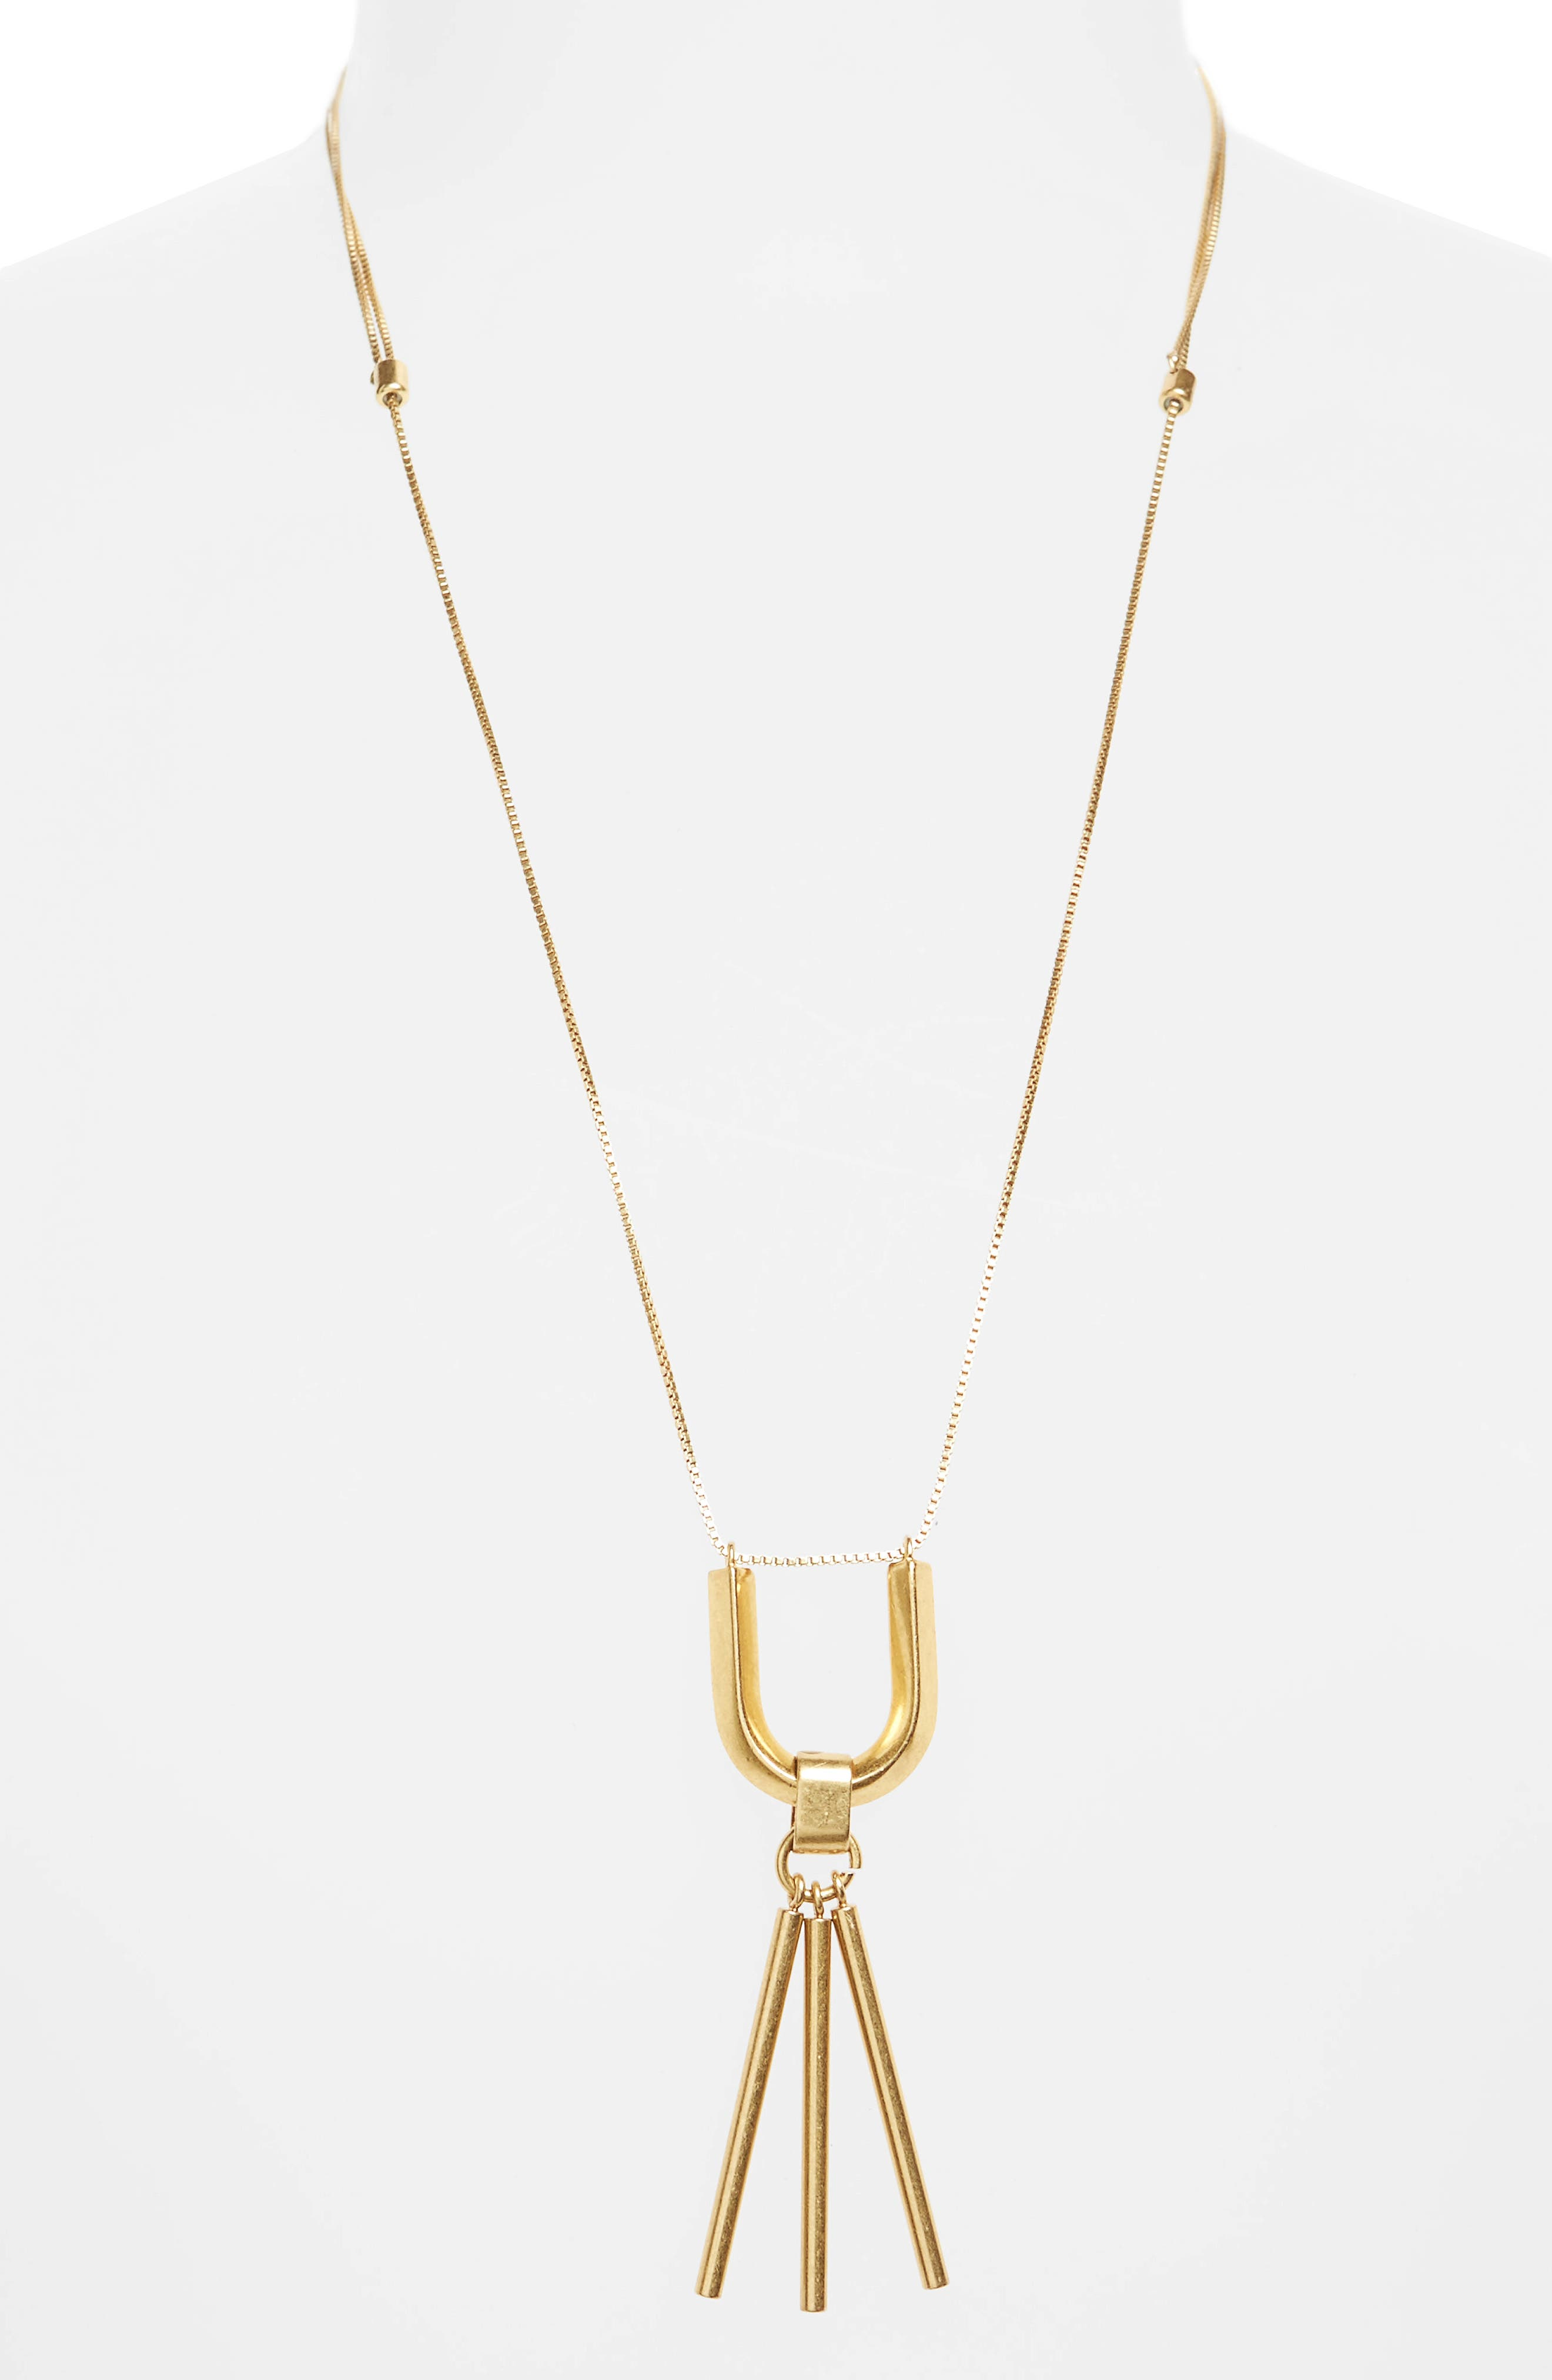 Main Image - Madewell Curvelink Pendant Necklace